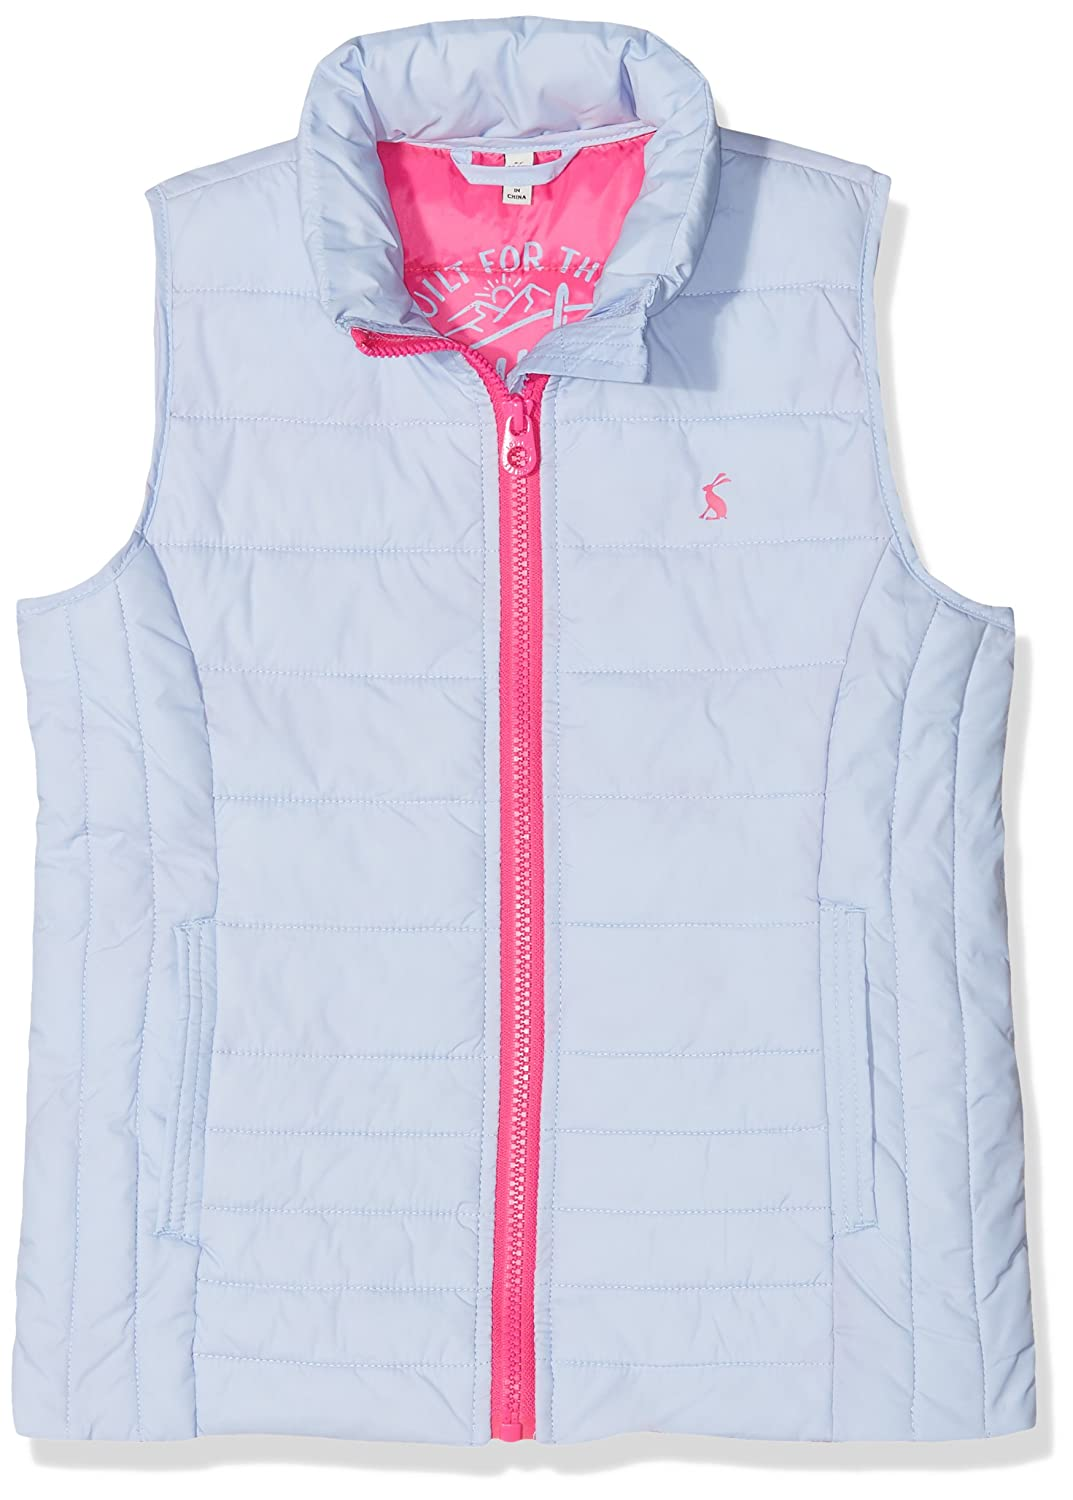 Joules Girl's Croft Gilet Joules Girl's Croft Gilet